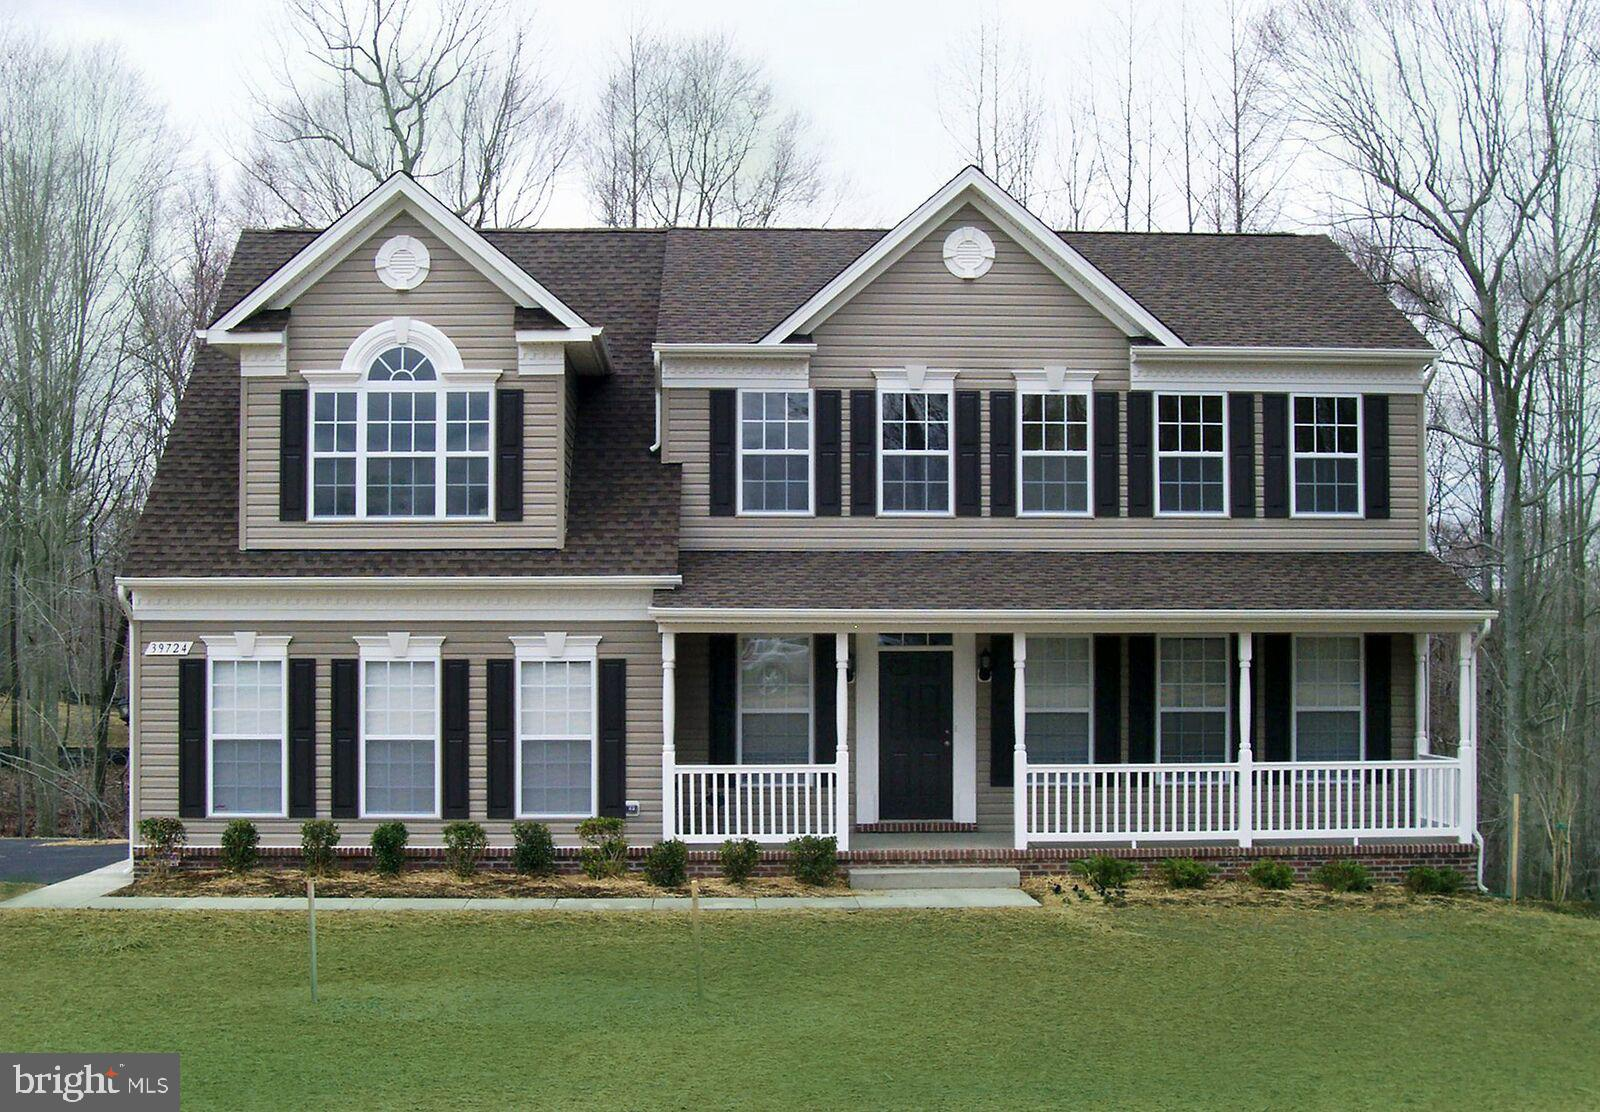 New Construction on lot 11 in Foxwood- This Grandhaven floor plan has upgraded hardwood through out